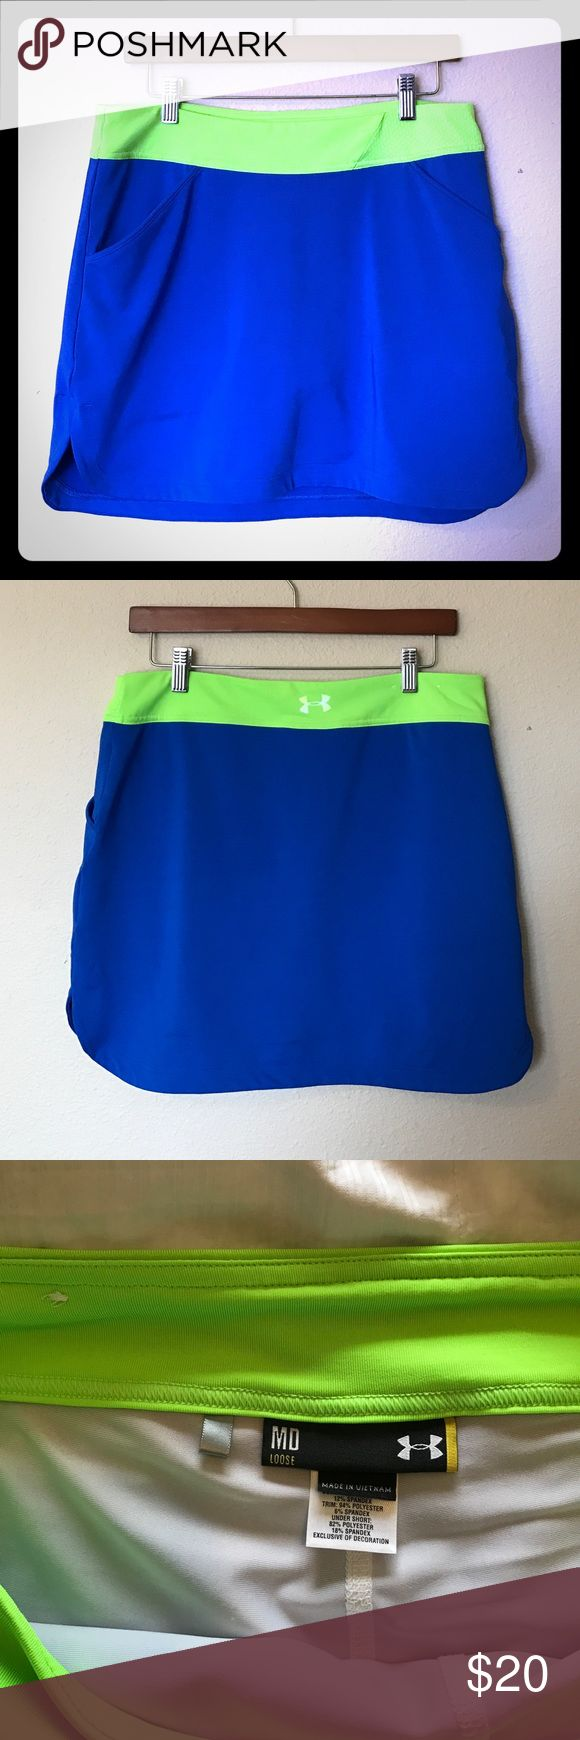 Under Armour Heat Gear workout skort skirt Under Armour Heat Gear workout skort (skirt with attached compression shorts). 2 pockets in front. EUC, no stains, rips or holes. I also have a matching Under Armour collared muscle tee in my closet for sale! Bundle and save! Under Armour Shorts Skorts